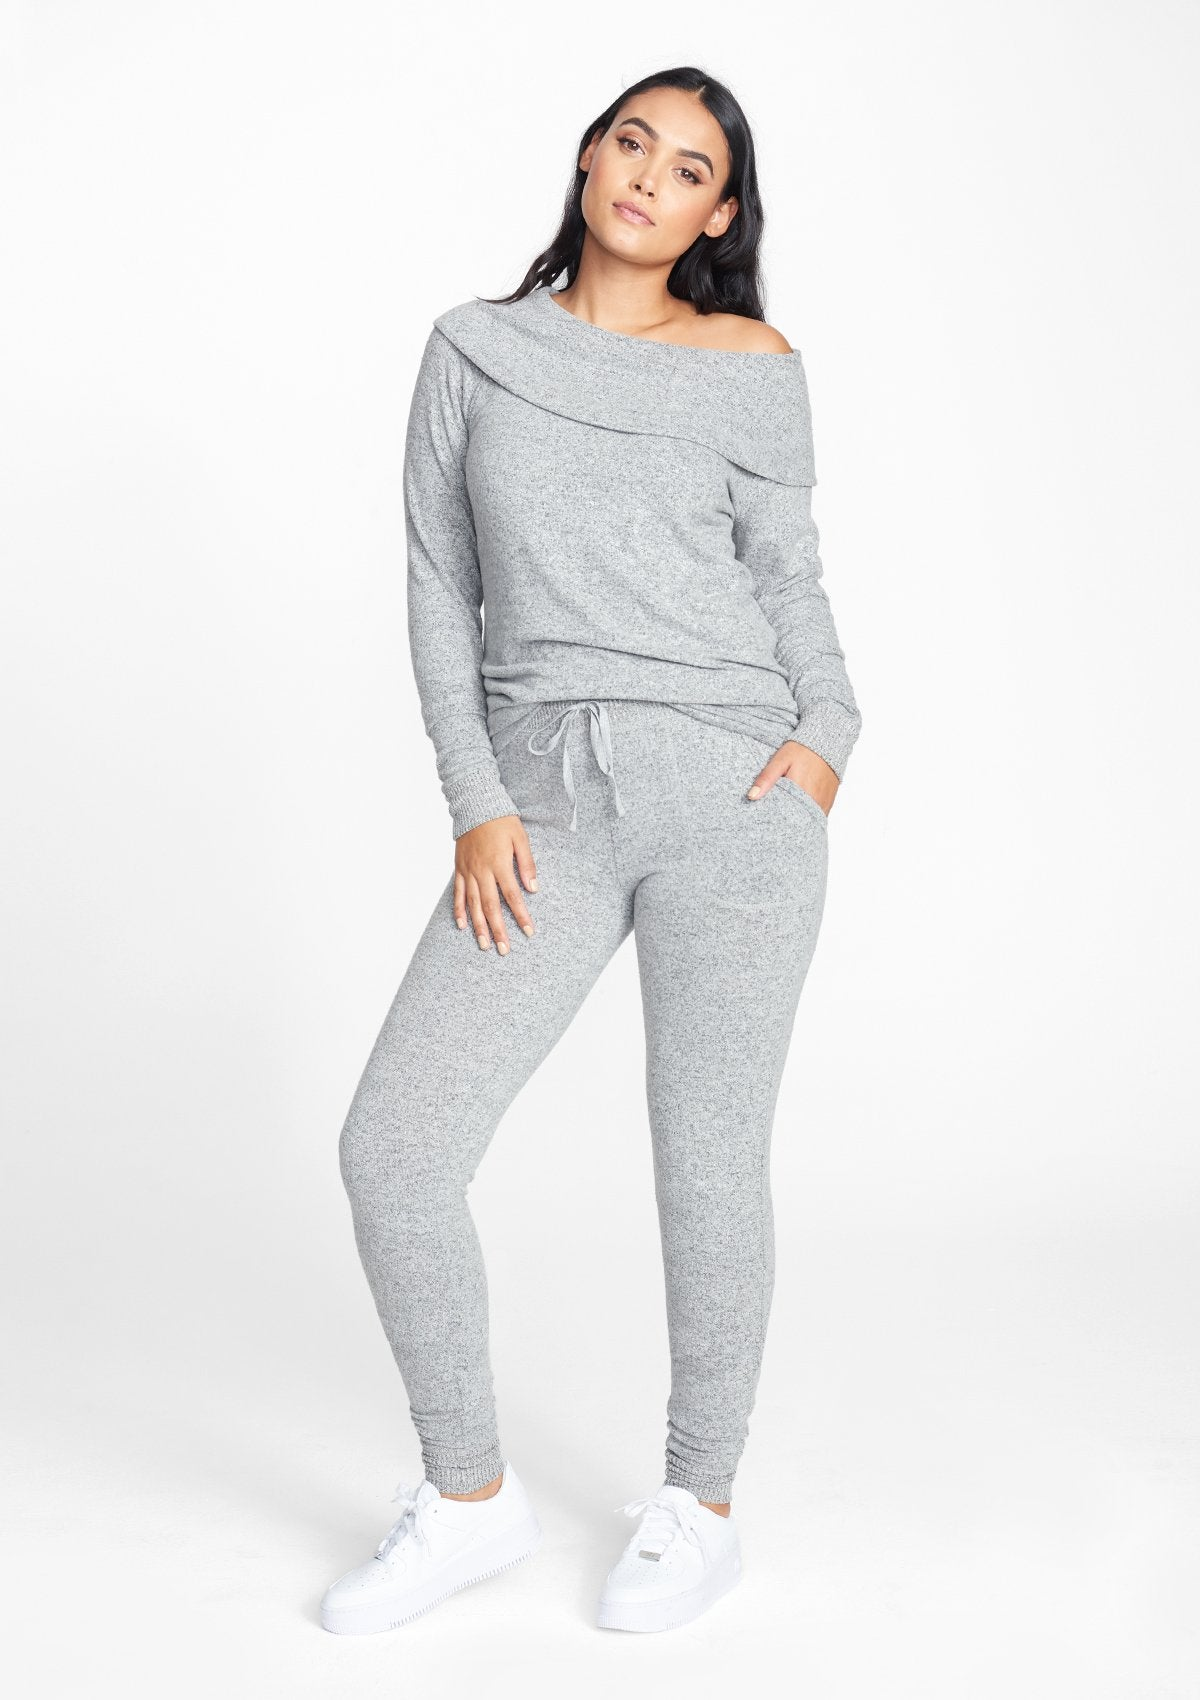 Alloy Apparel Tall Super Soft Joggers for Women in Heather Grey Size M   Rayon